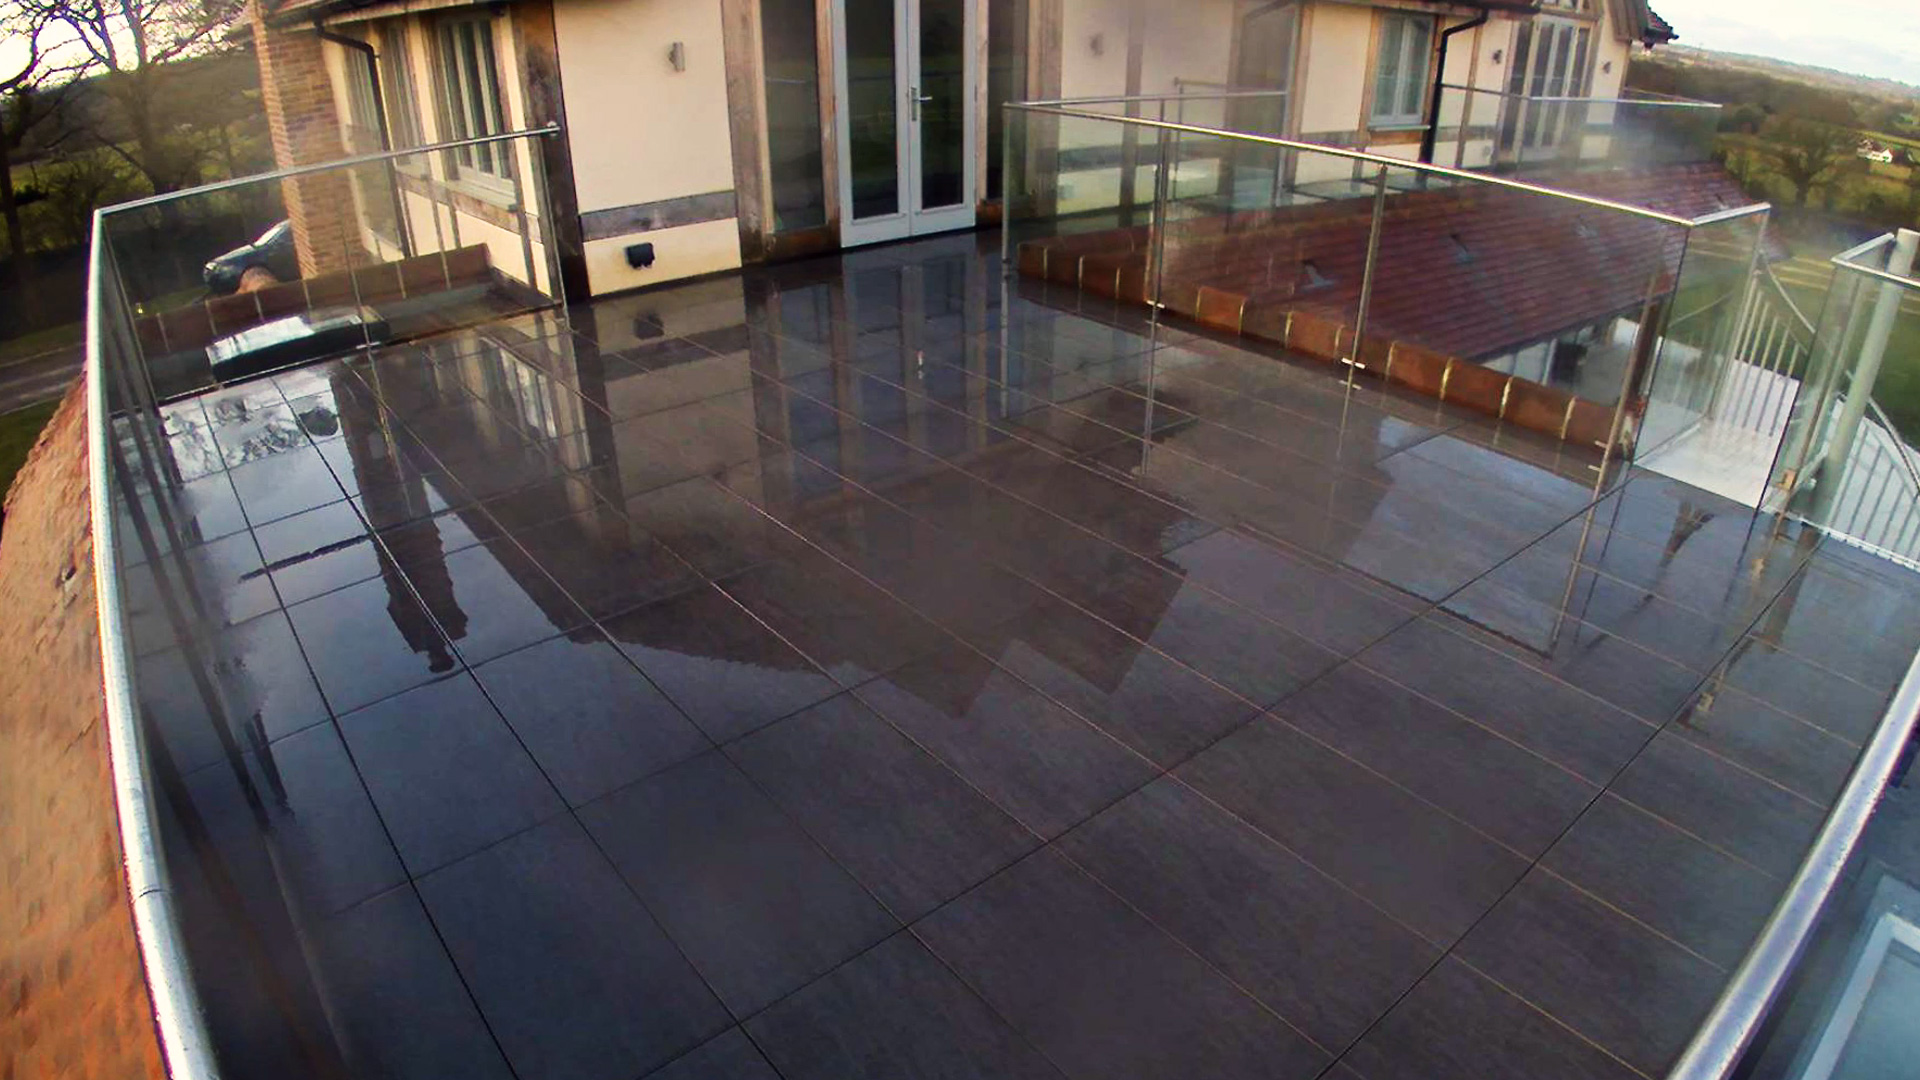 Rail System for laying porcelain tiles, Albourne, West Sussex